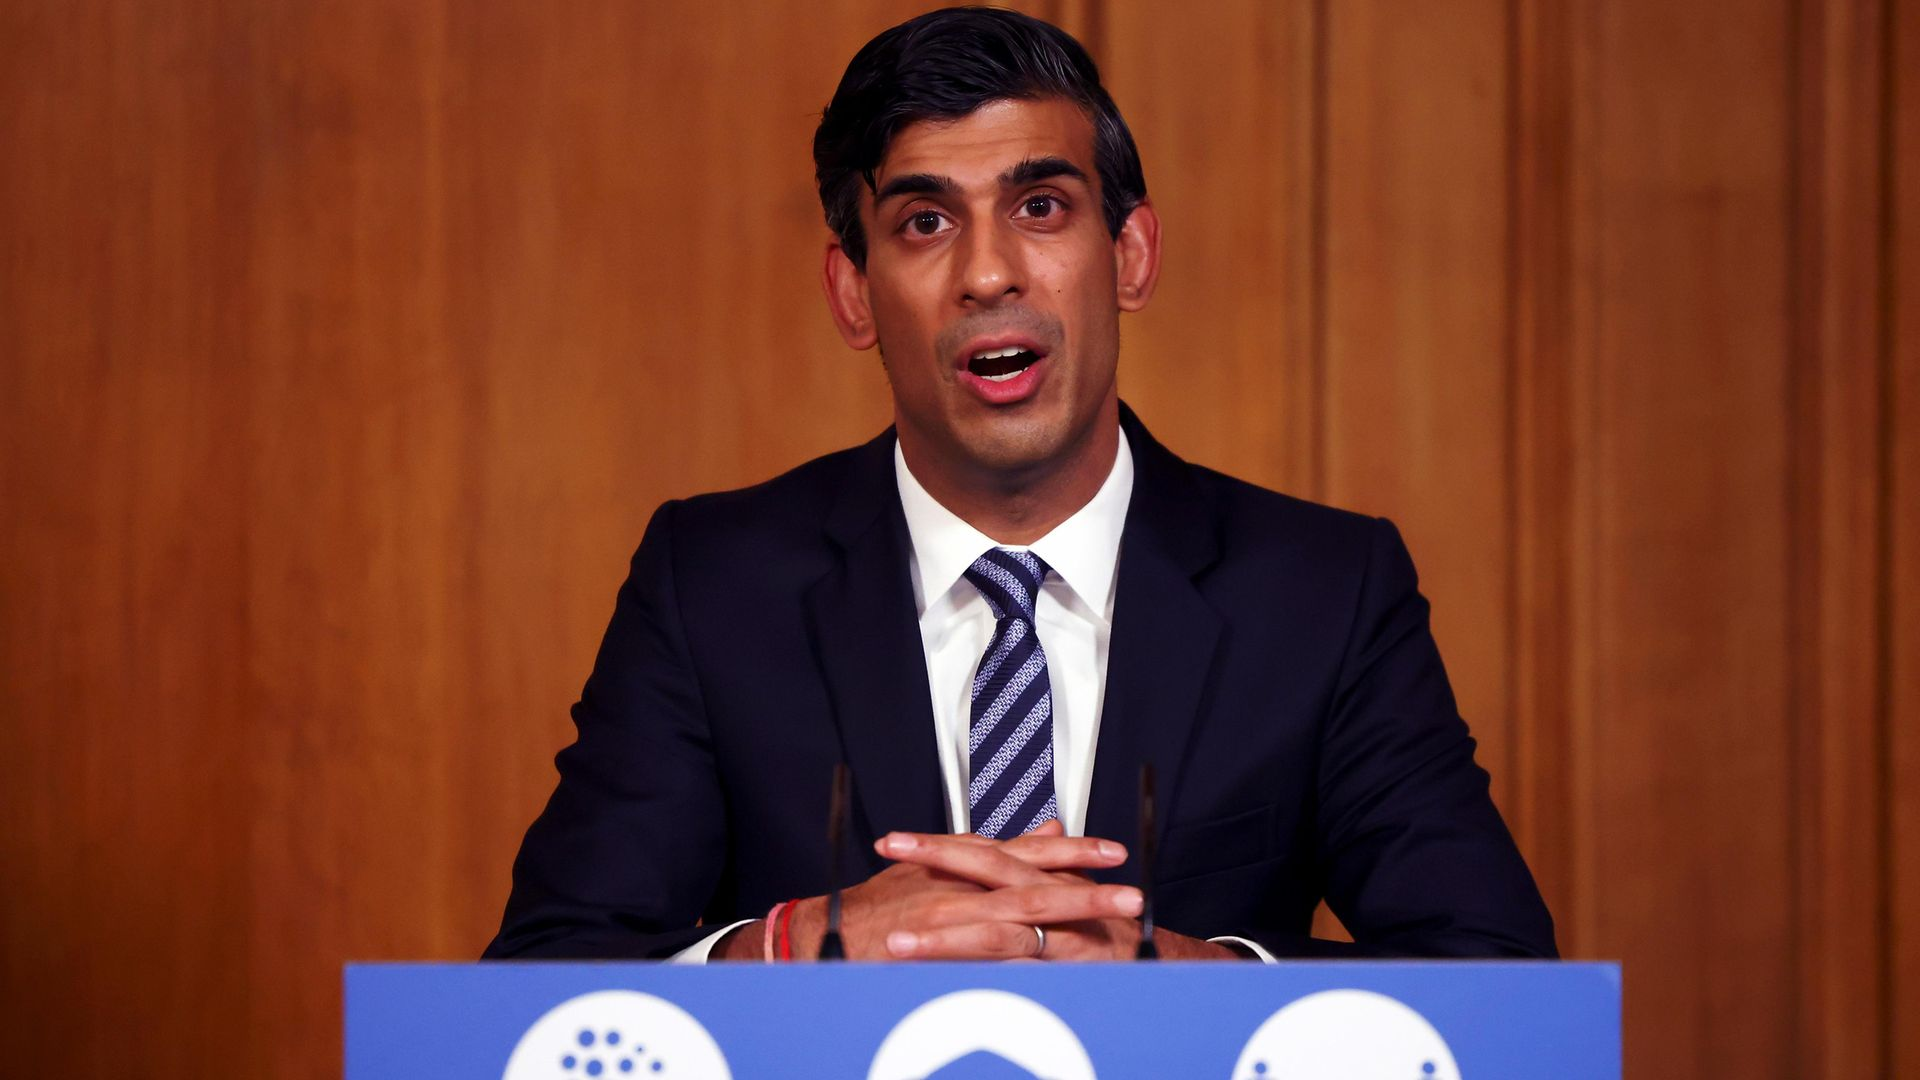 Chancellor of the Exchequer Rishi Sunak - Credit: Getty Images